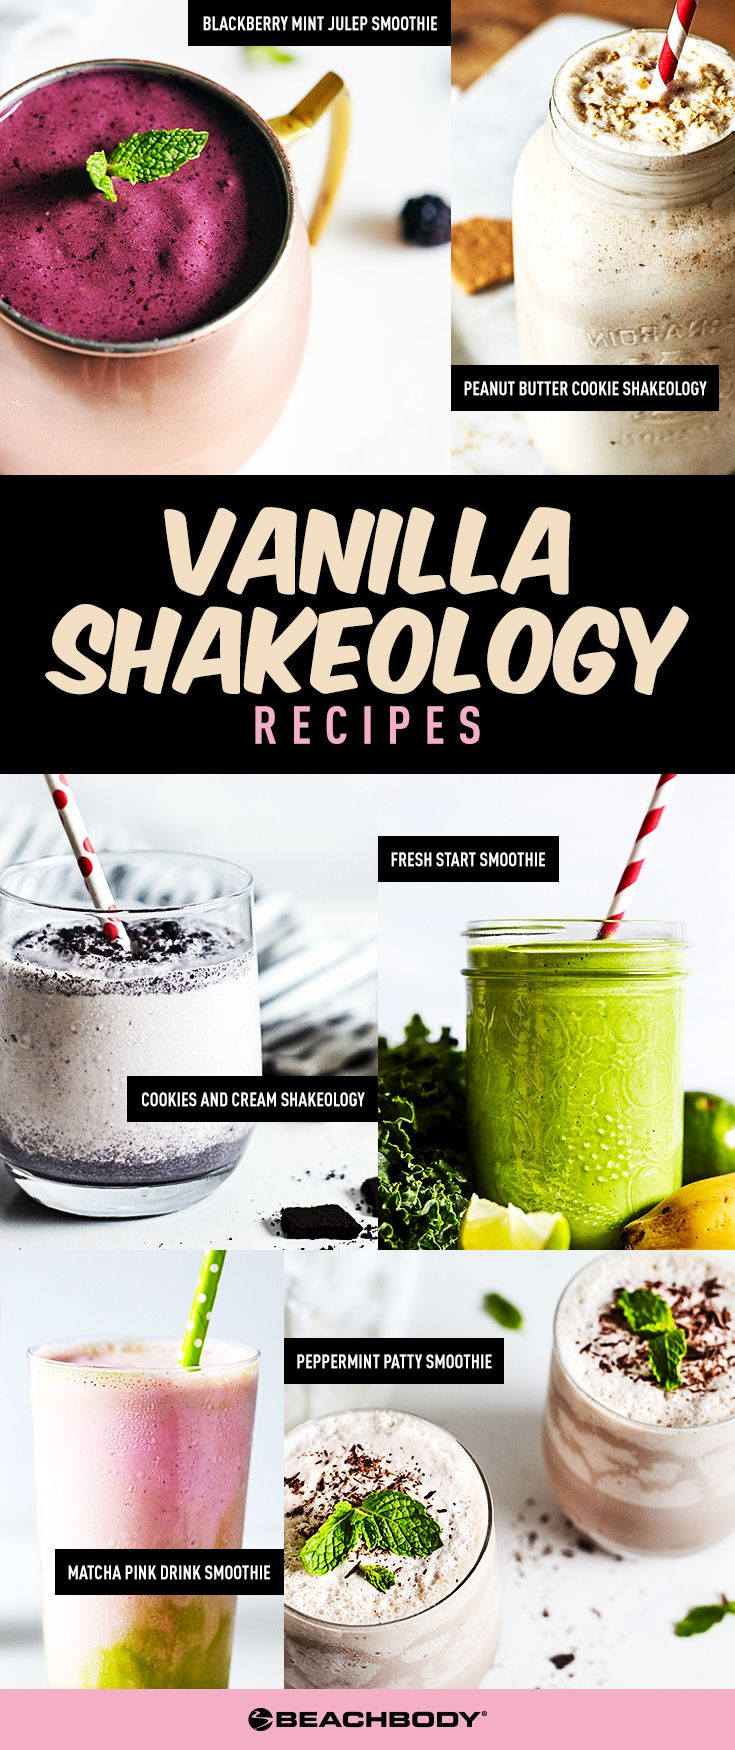 These Vanilla Shakeology recipes for fruity smoothies, dessert smoothies, and everything in between prove that vanilla is anything but basic.